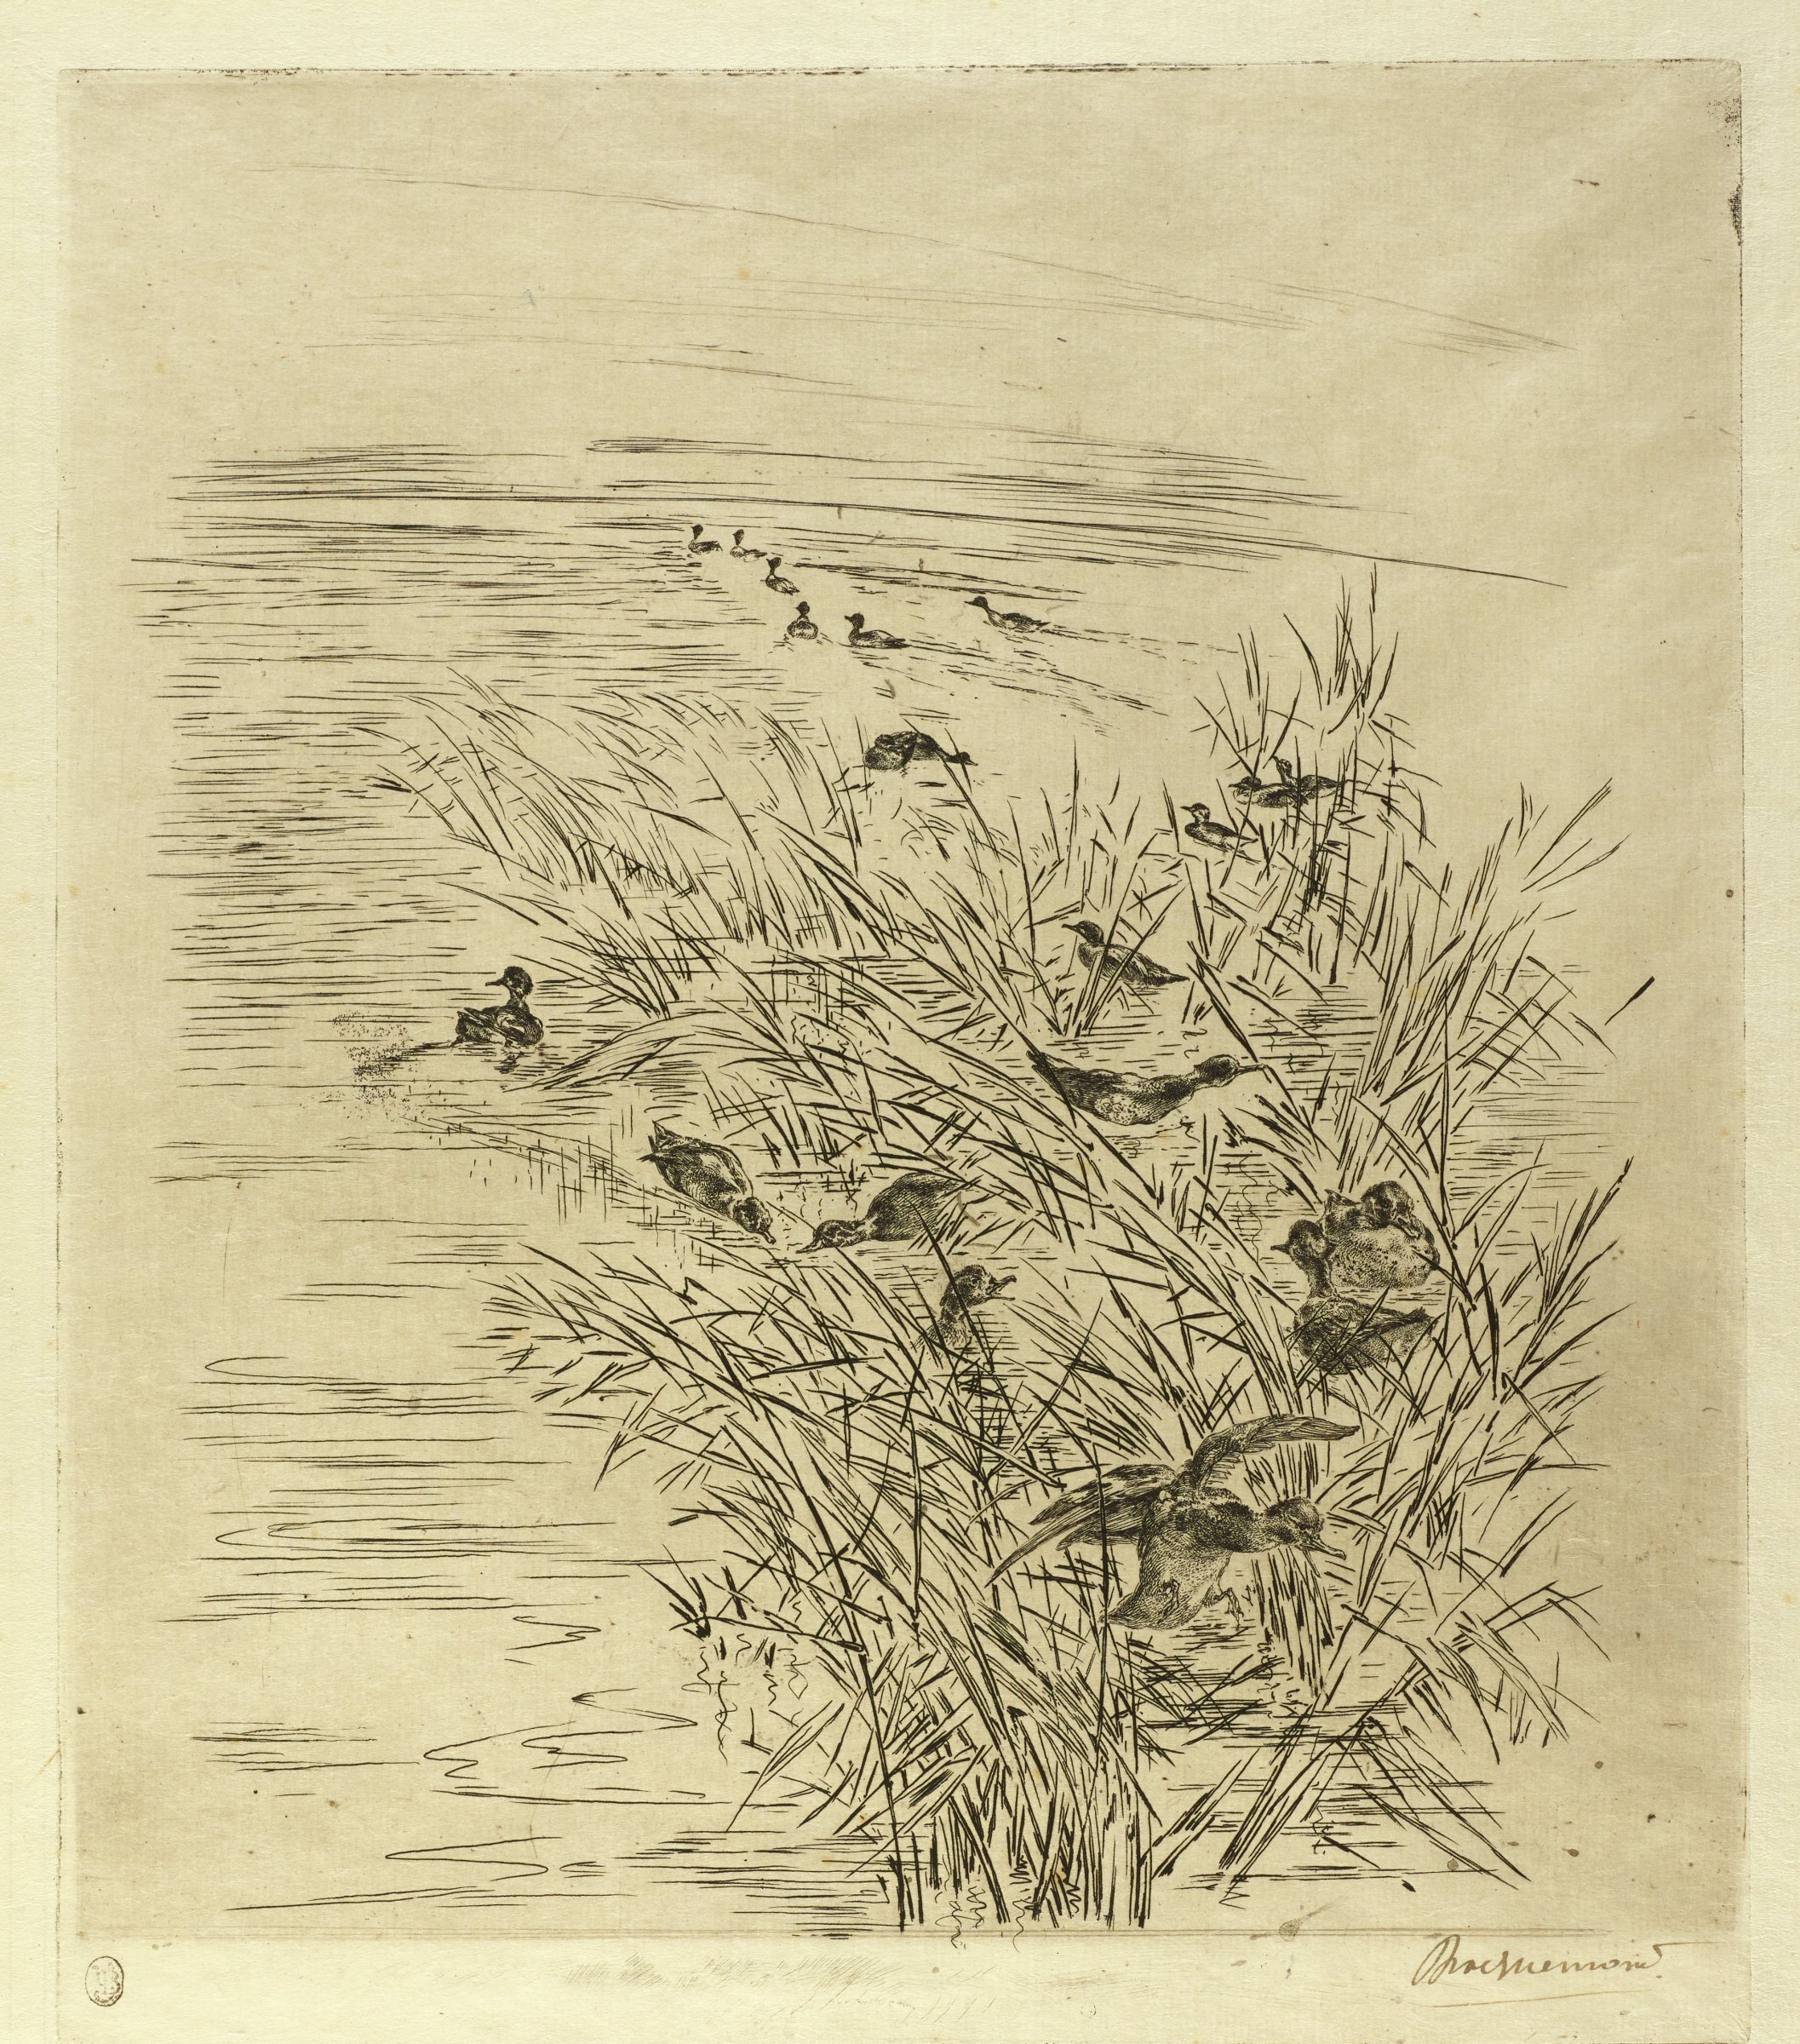 A flock of teals swim between reeds that grow out of the water. In the background, a line of teals swim away from the viewer.